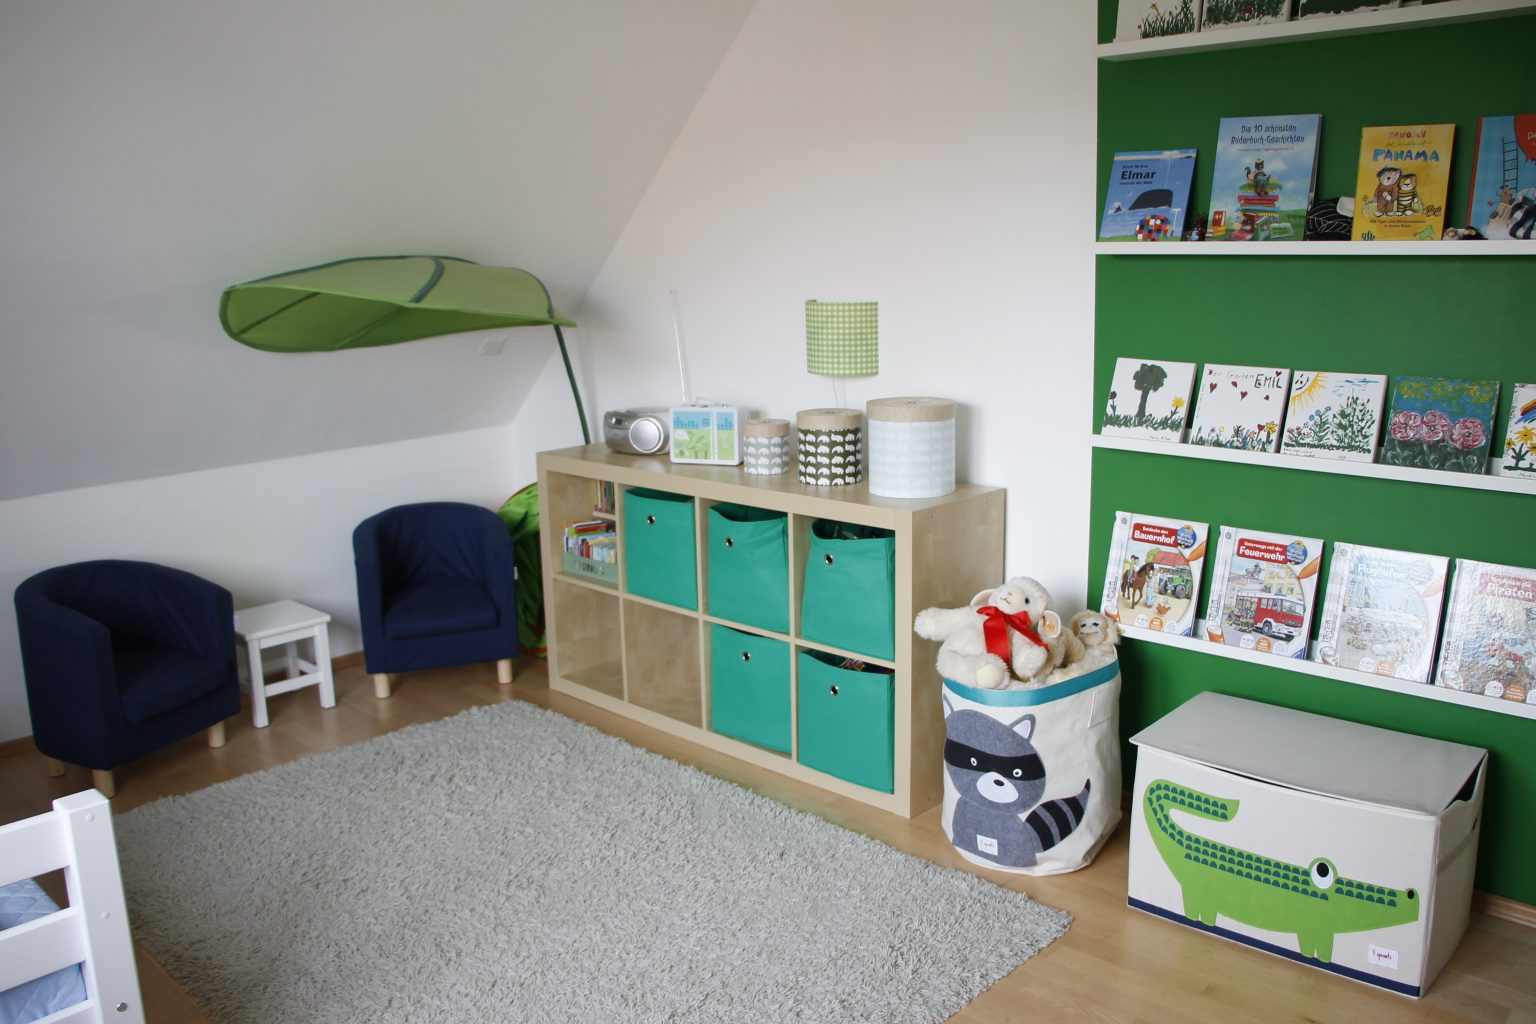 kinderzimmer einrichten tipps rund um m bel deko und. Black Bedroom Furniture Sets. Home Design Ideas